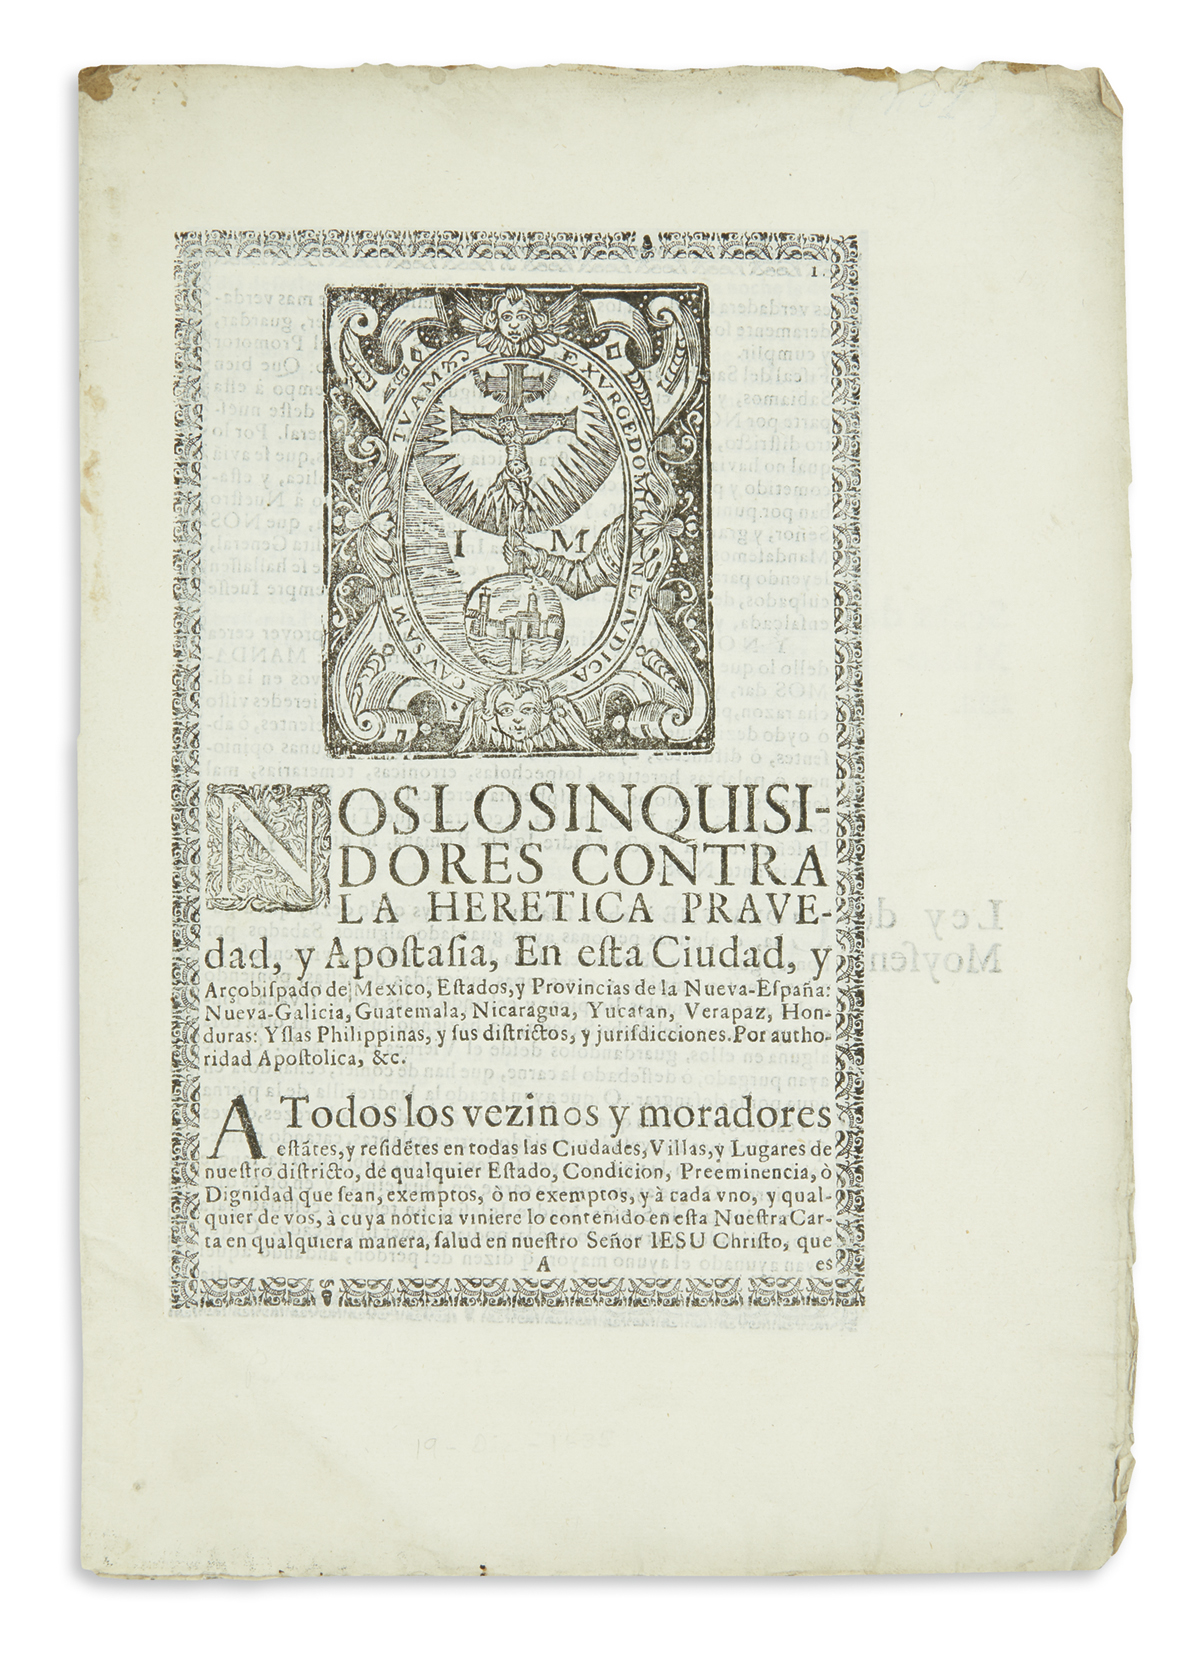 (MEXICAN IMPRINT--1700s.) Inquisition document on the detection of Jews, Moslems, and other heretics.